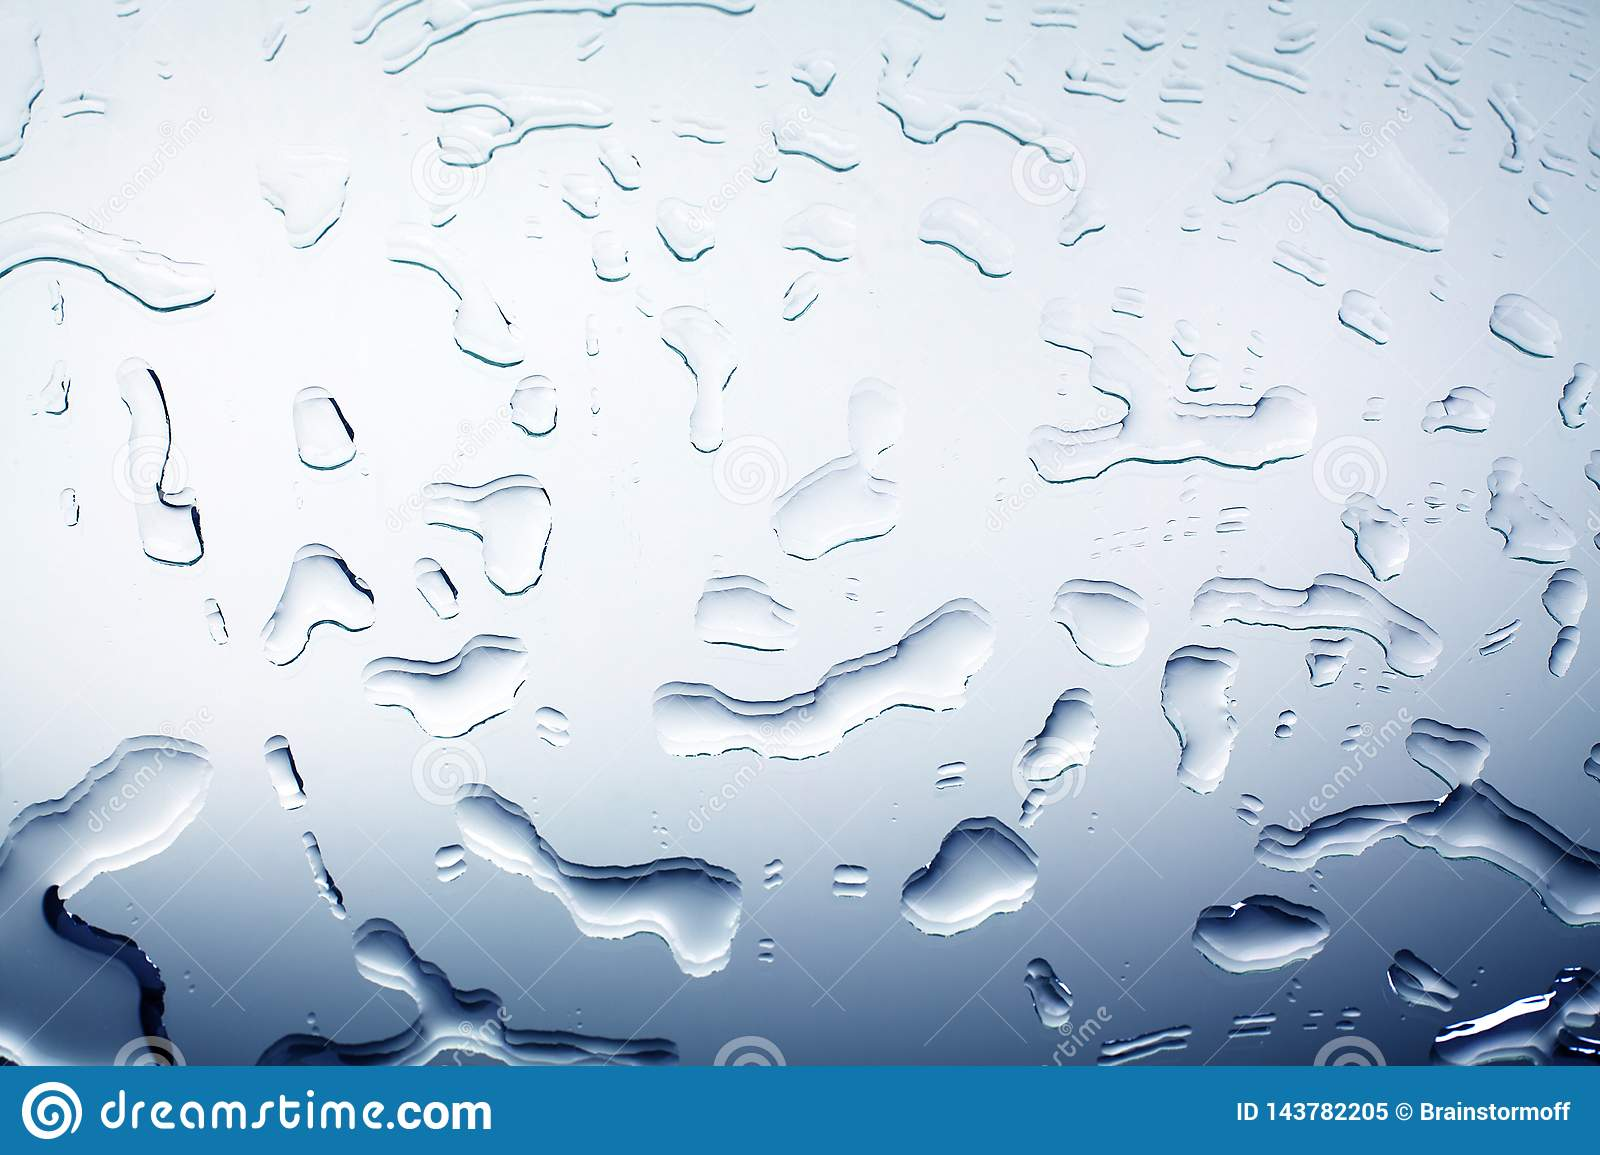 Drops of spilled water on mirror glass surface, water blots, abstract design background, wet textured gradient pattern blue color